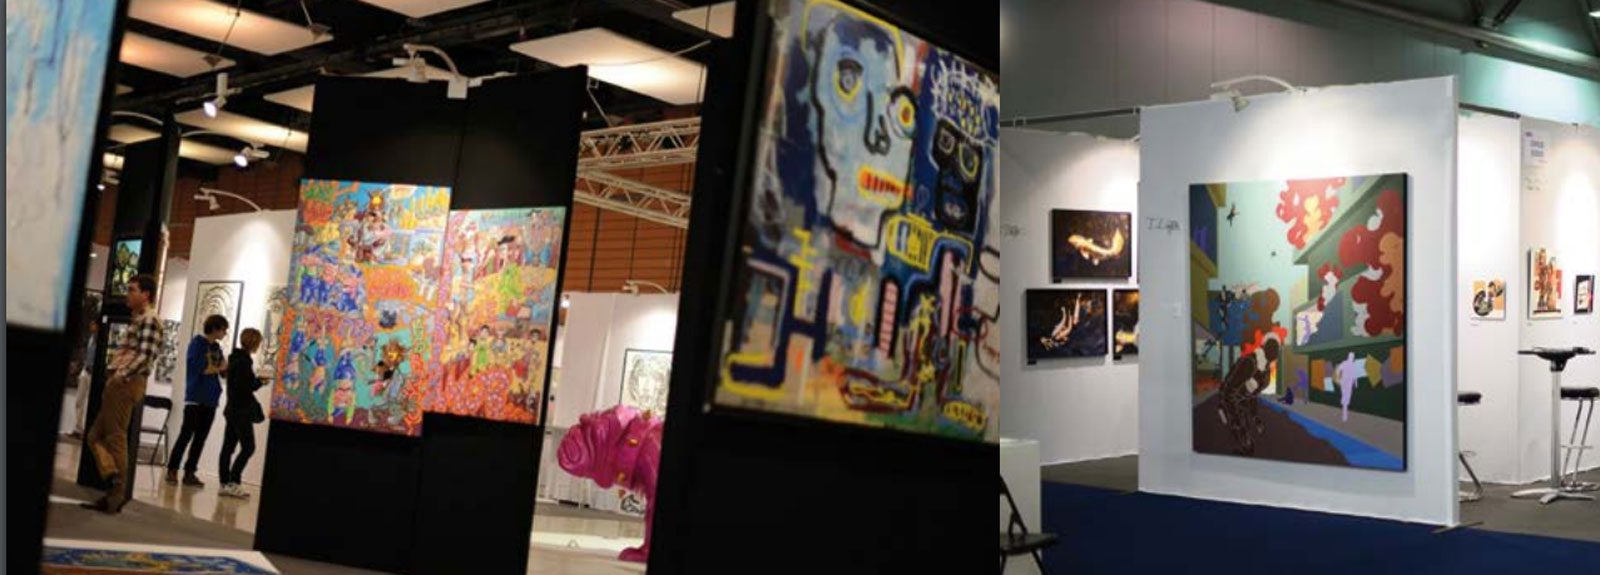 Salon d art contemporain art3f metz 2016 - Salon art contemporain ...